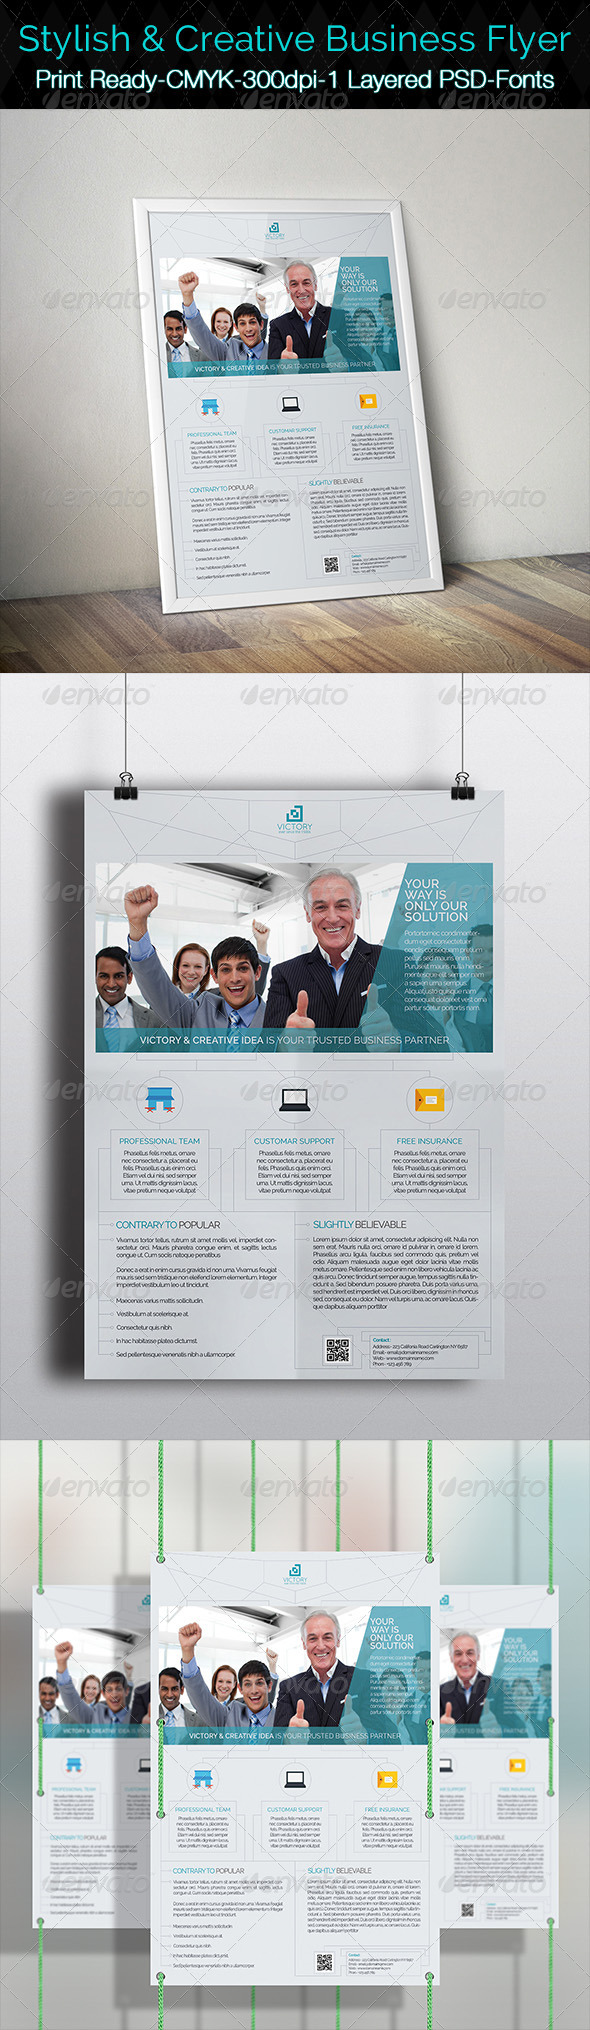 GraphicRiver Stylish & Creative Business Flyer 7652641